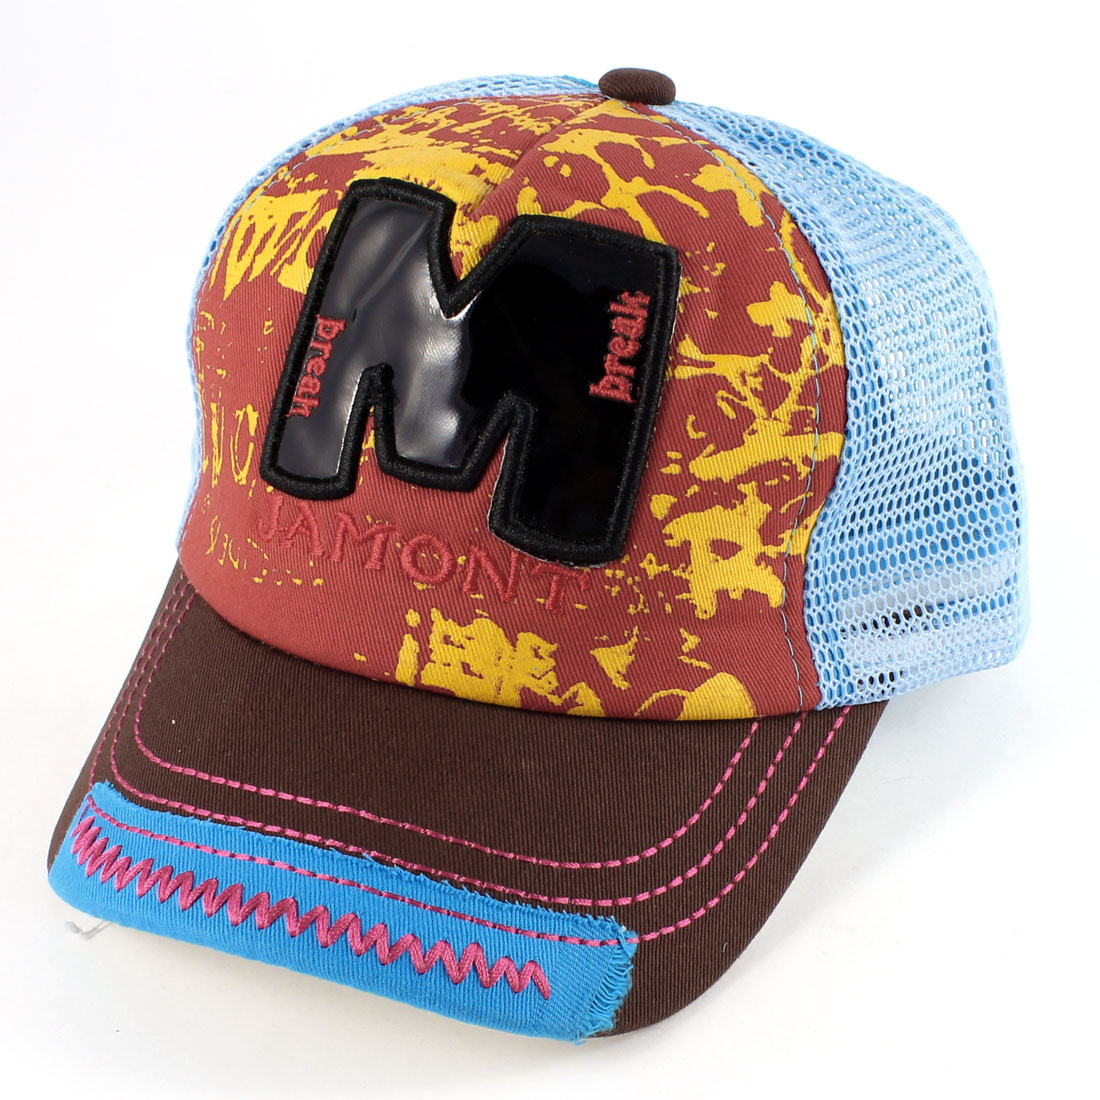 Unisex Letters Print Embellished Front Casual Summer Peaked Cap Blue Brown